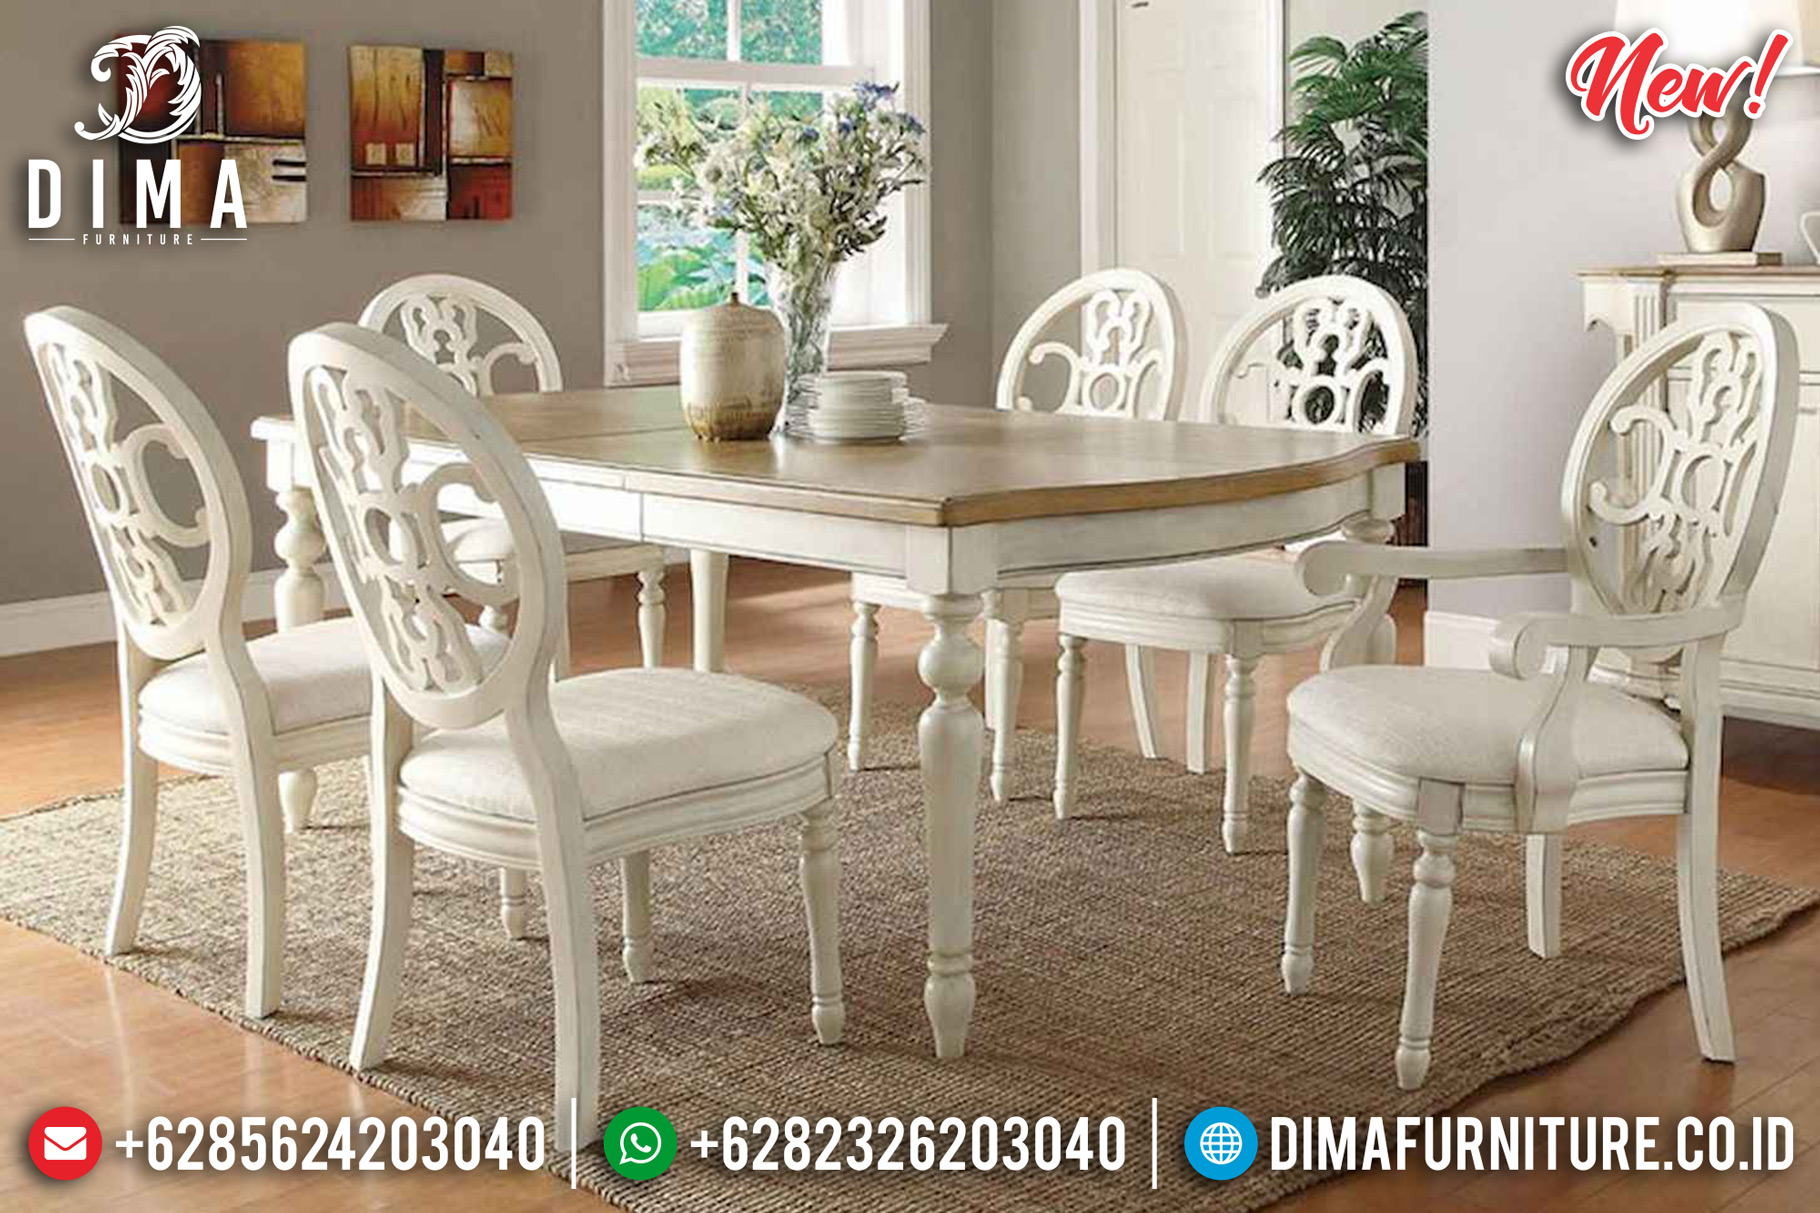 Harga Meja Makan Minimalis Jepara Classic Luxury Beauty Retro France Style DF-1448